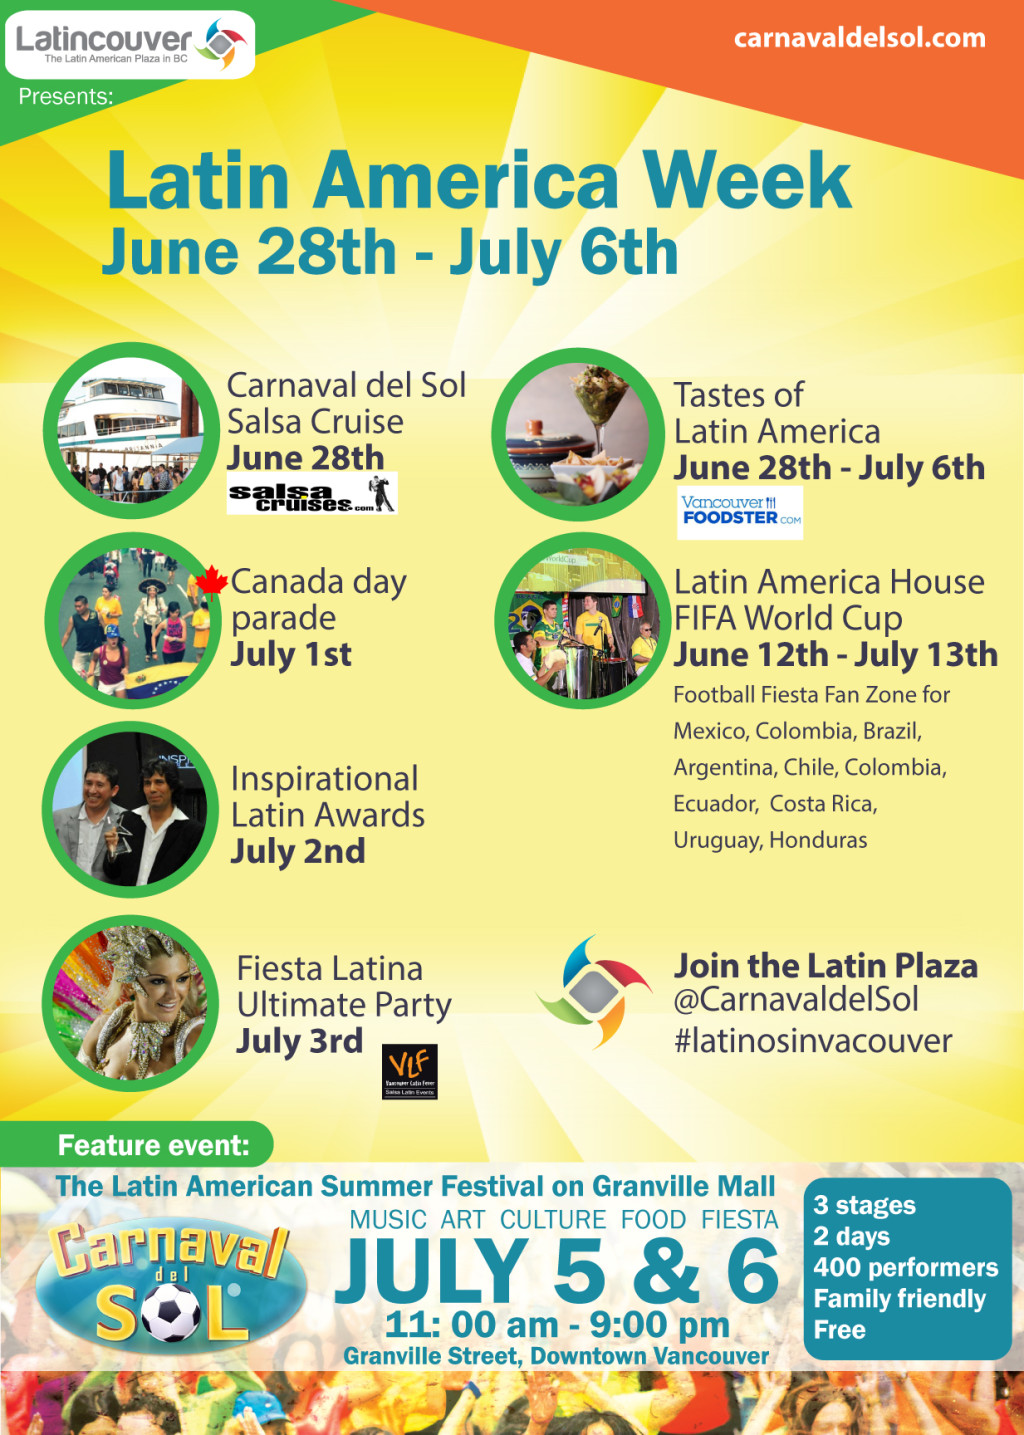 Latin America Week Events